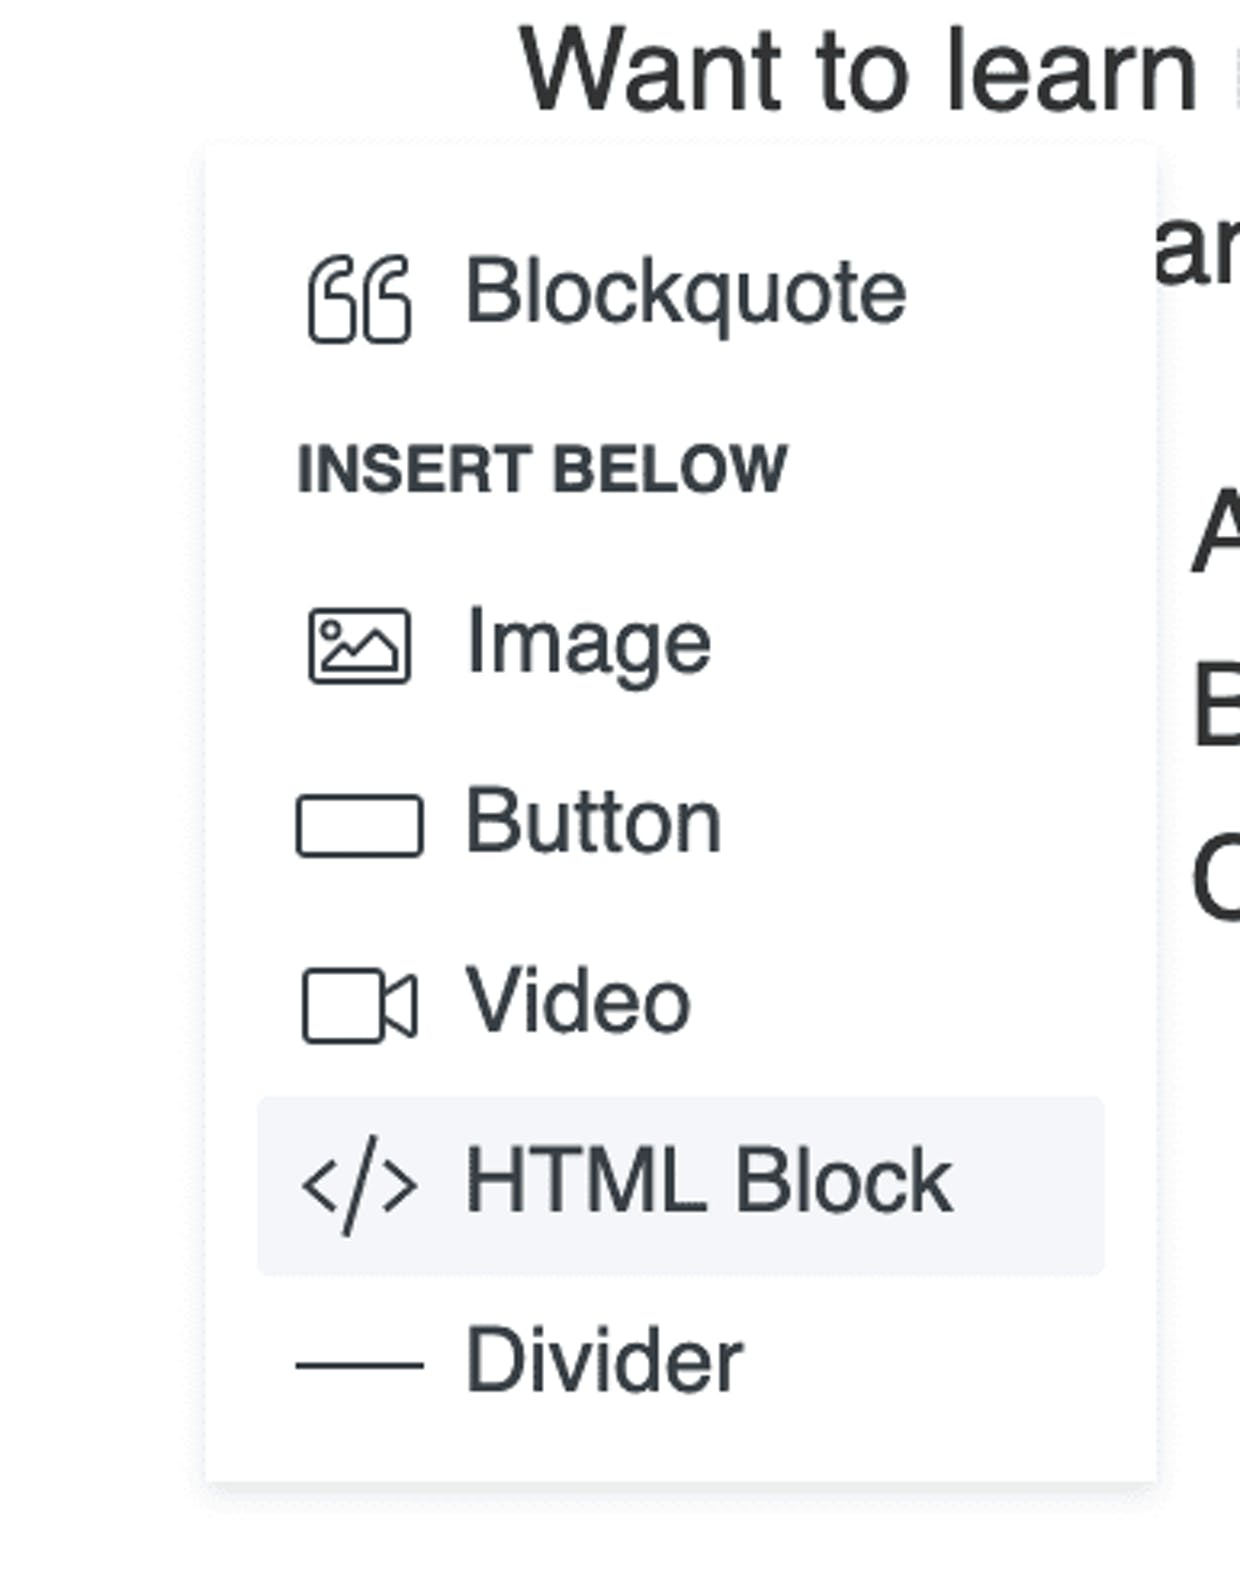 """Click the plus, then scroll down to """"html block"""" near the bottom."""